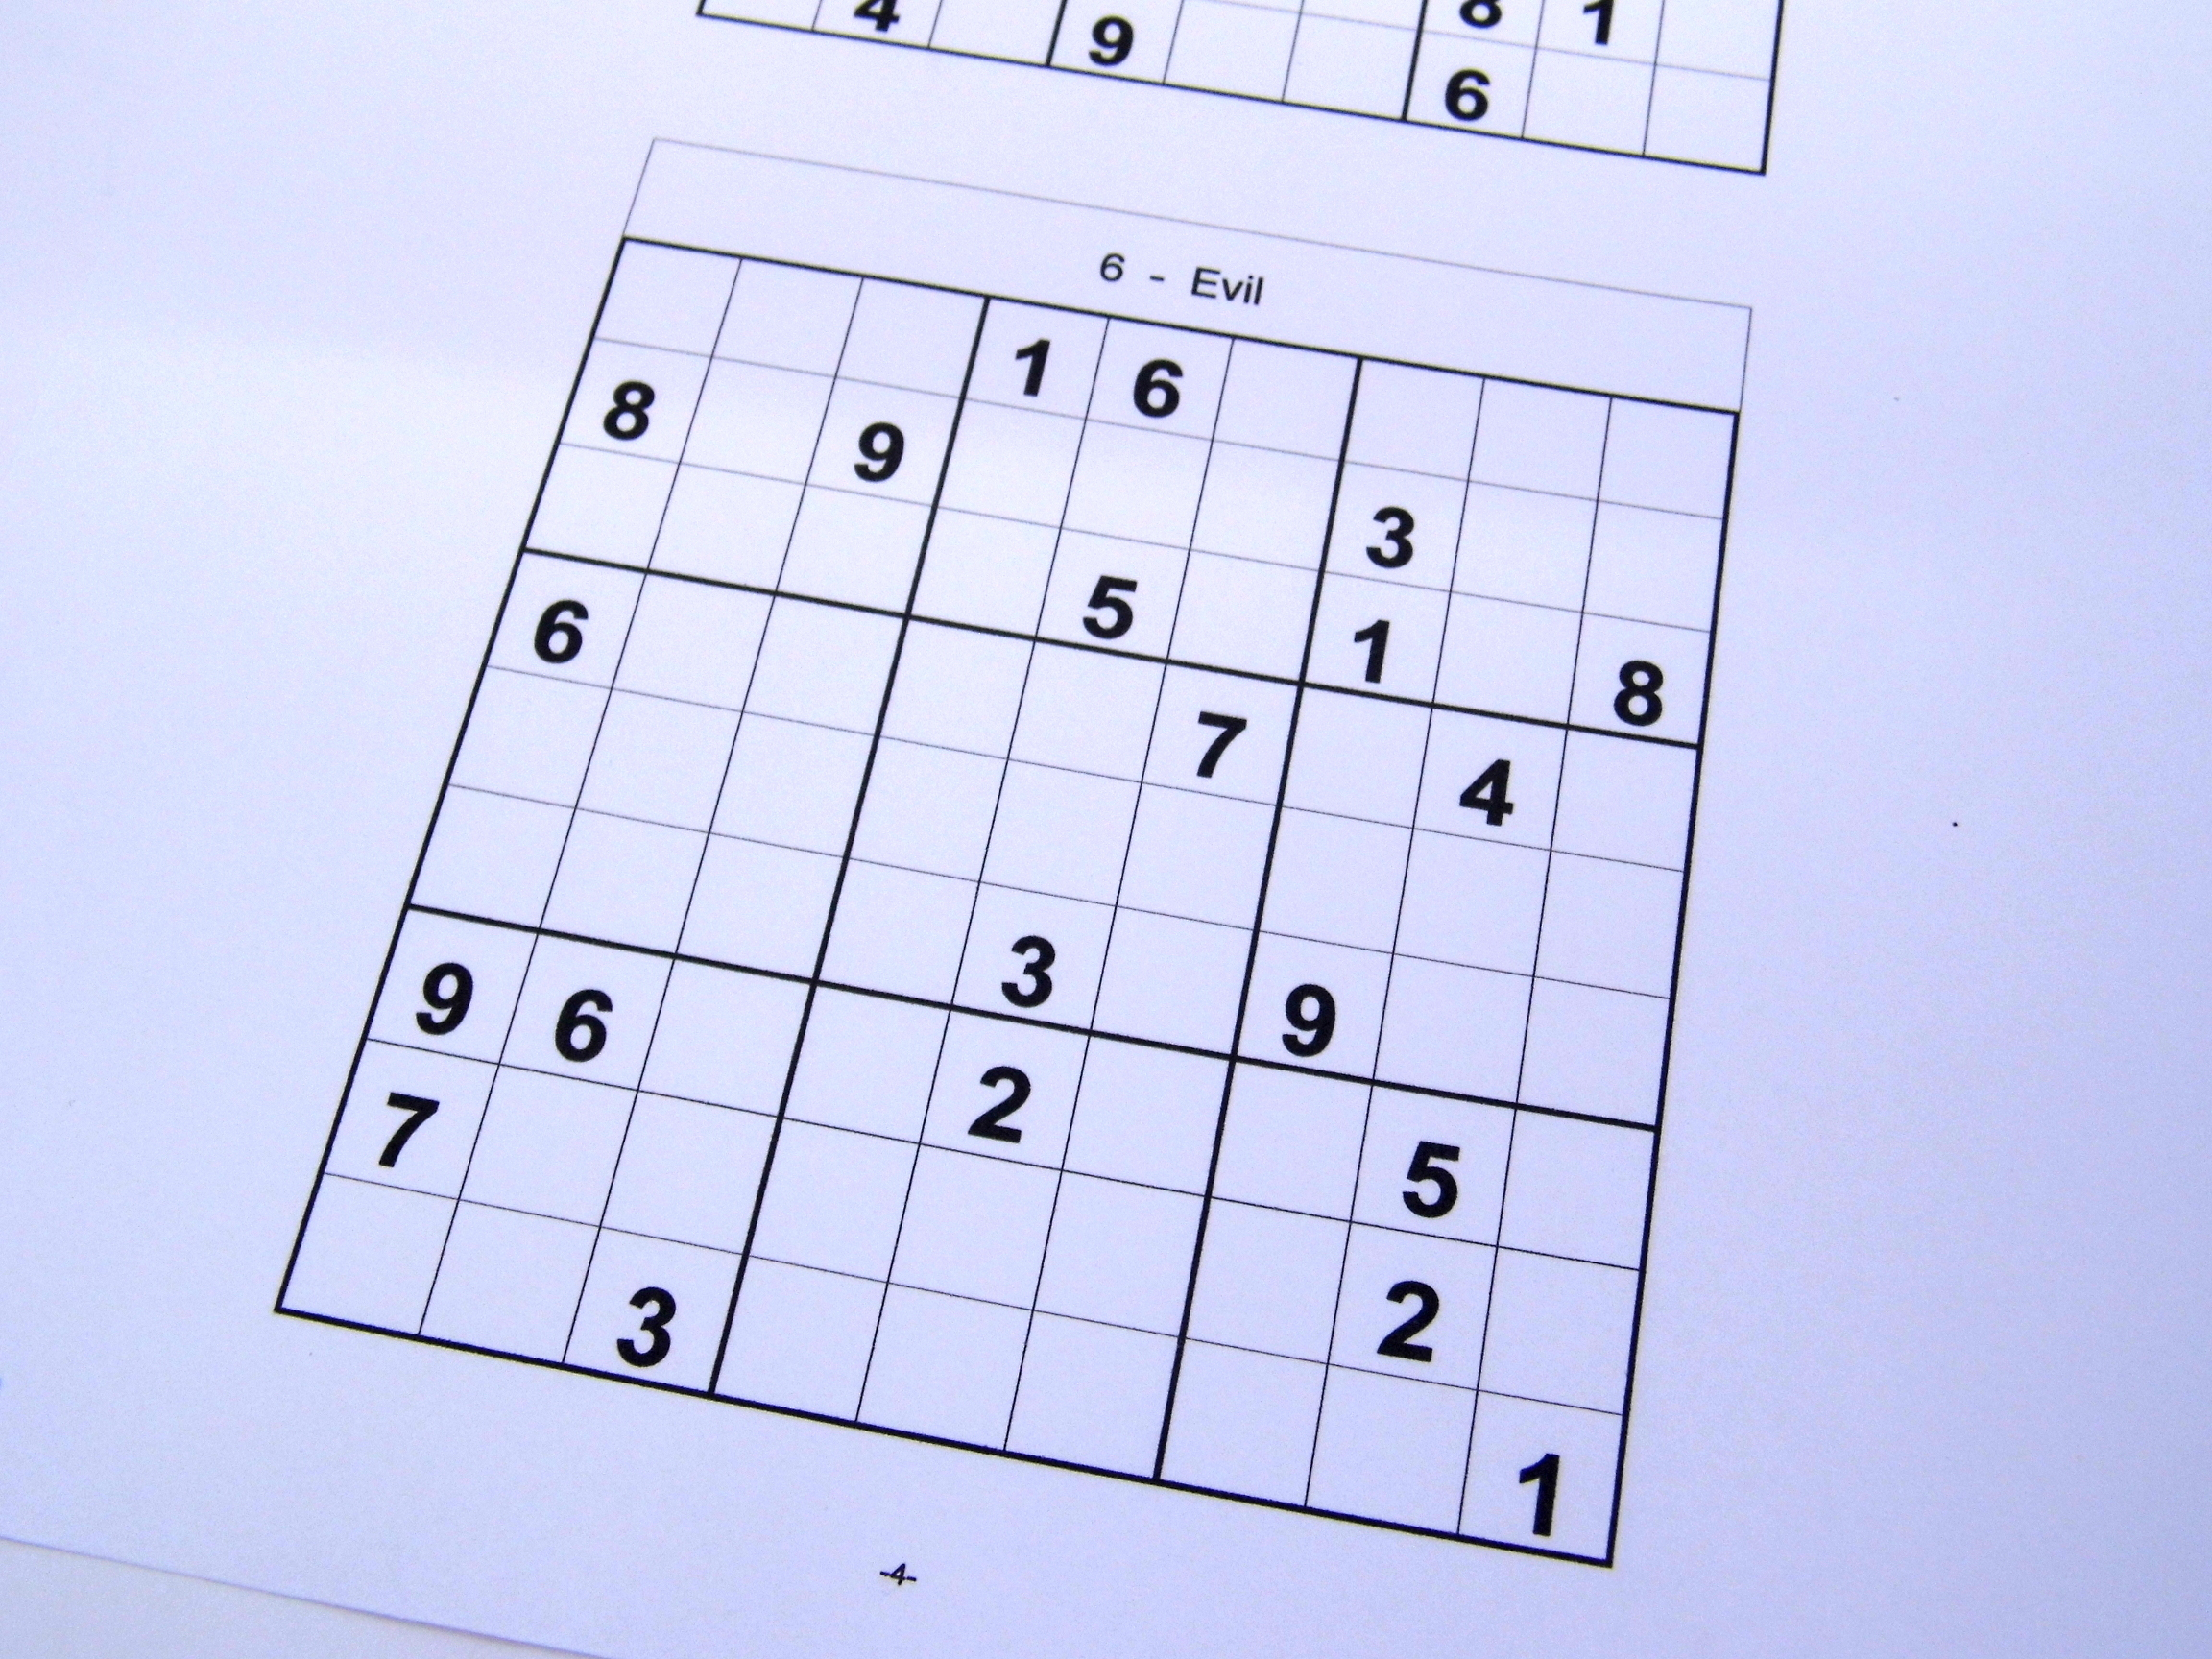 Evil Printable Sudoku Puzzles 6 Per Page – Book 12 – Free